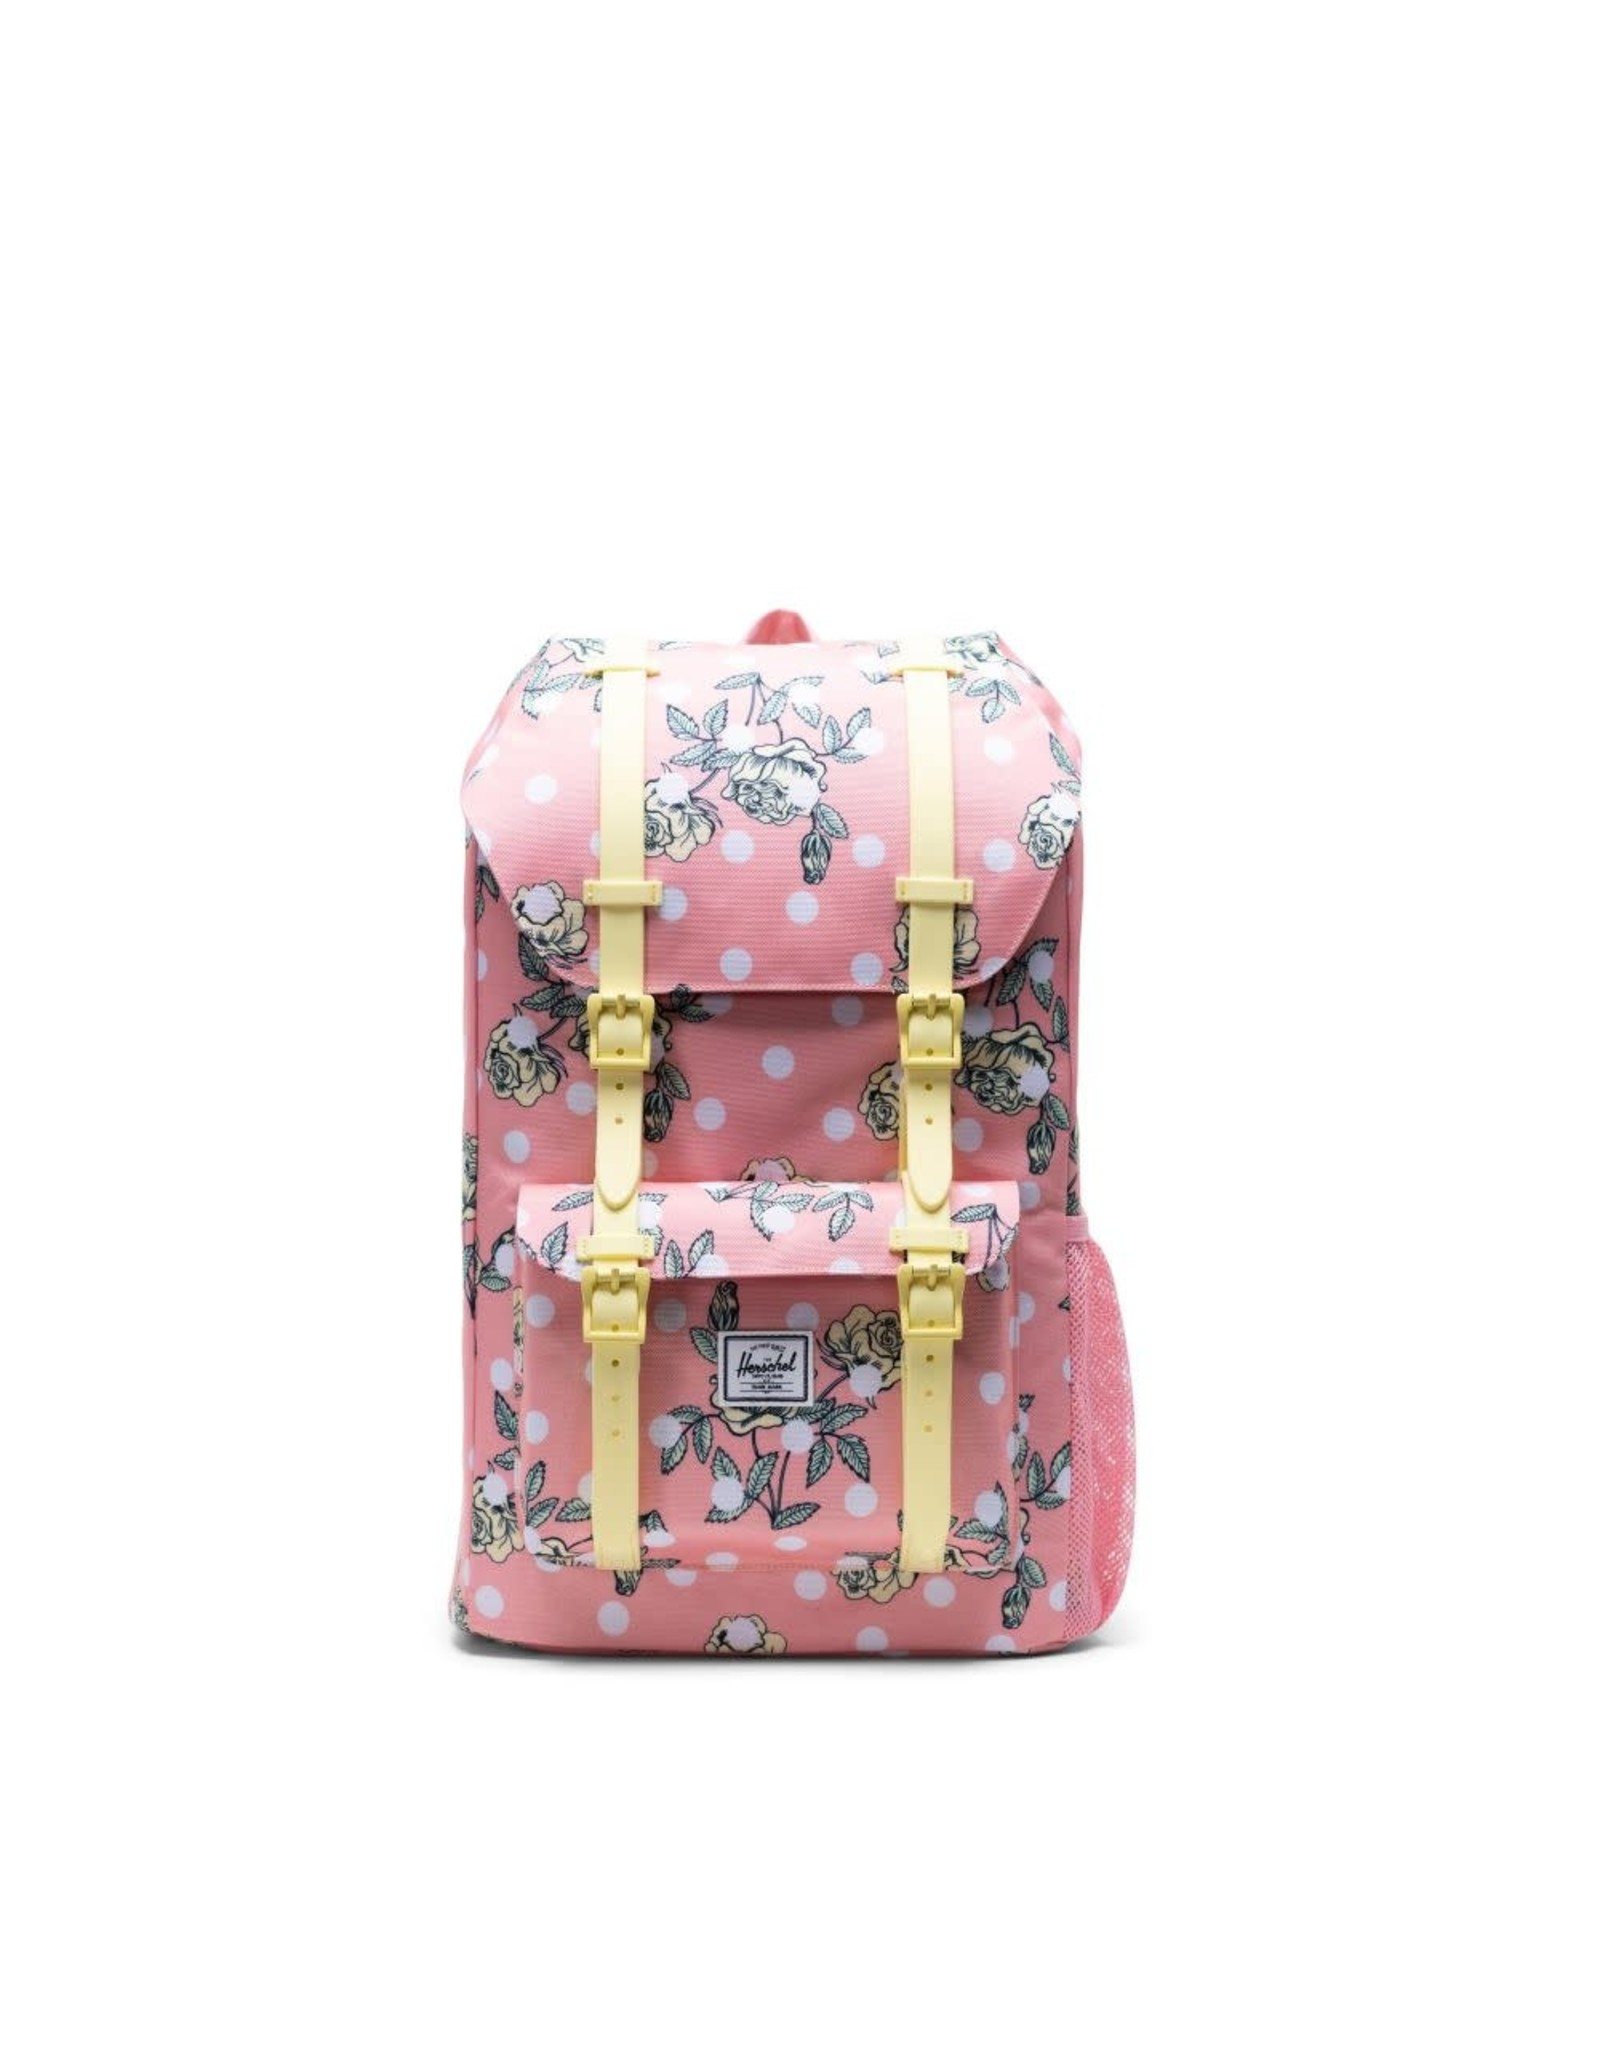 Herschel Supply Herschel Little America Youth Backpack, Polka Dot Floral Peony